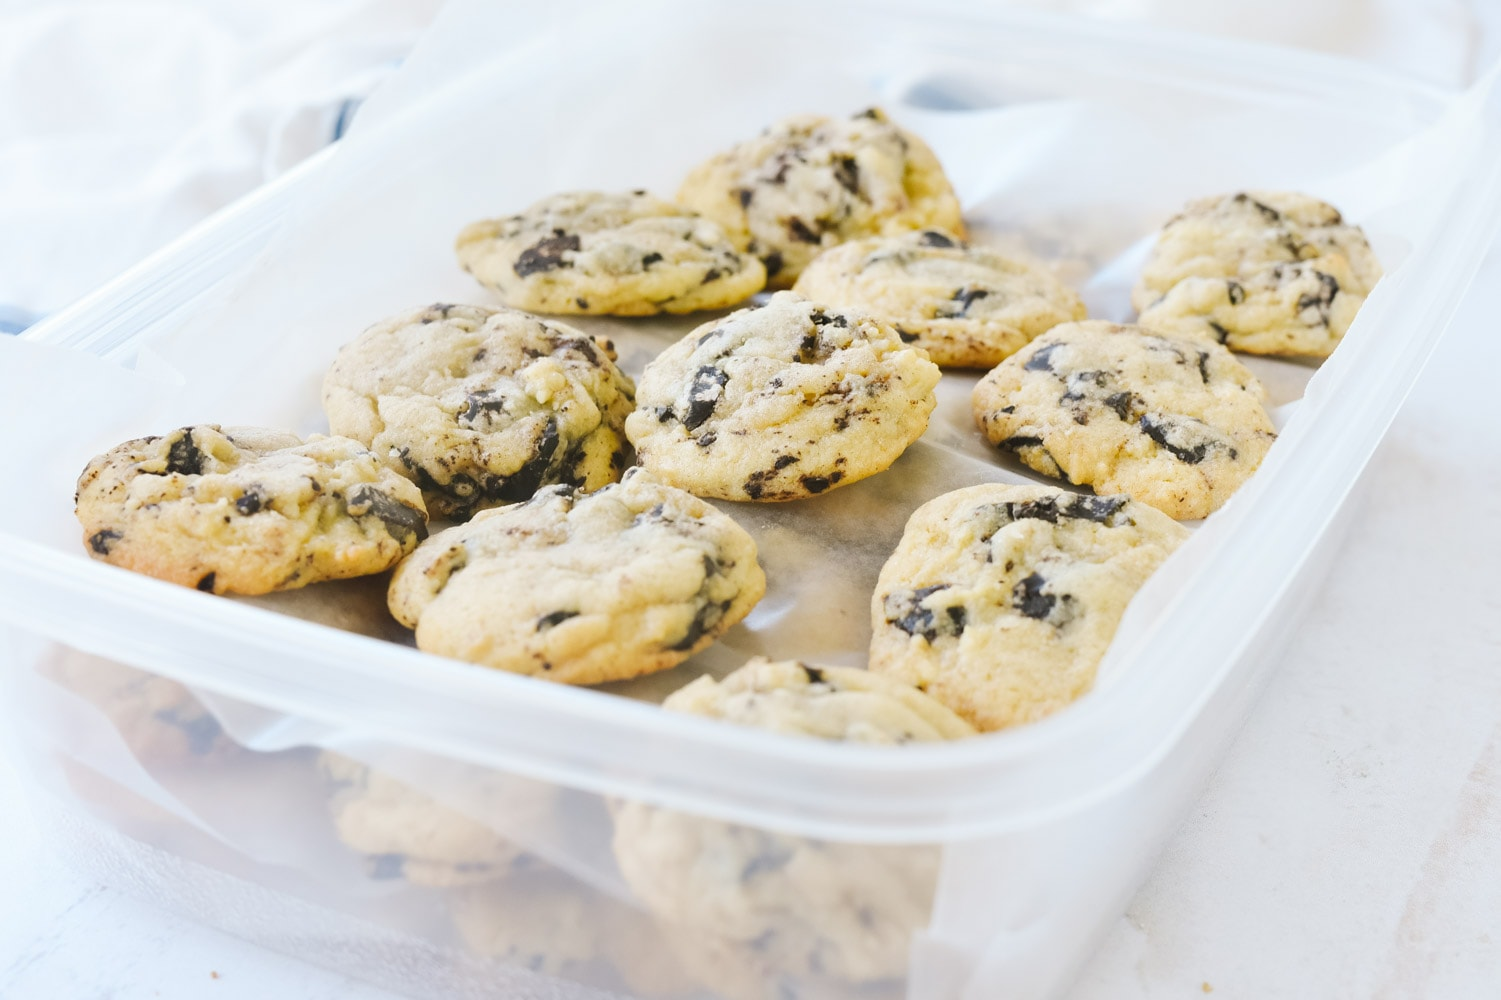 A box of chocolate chip cookies